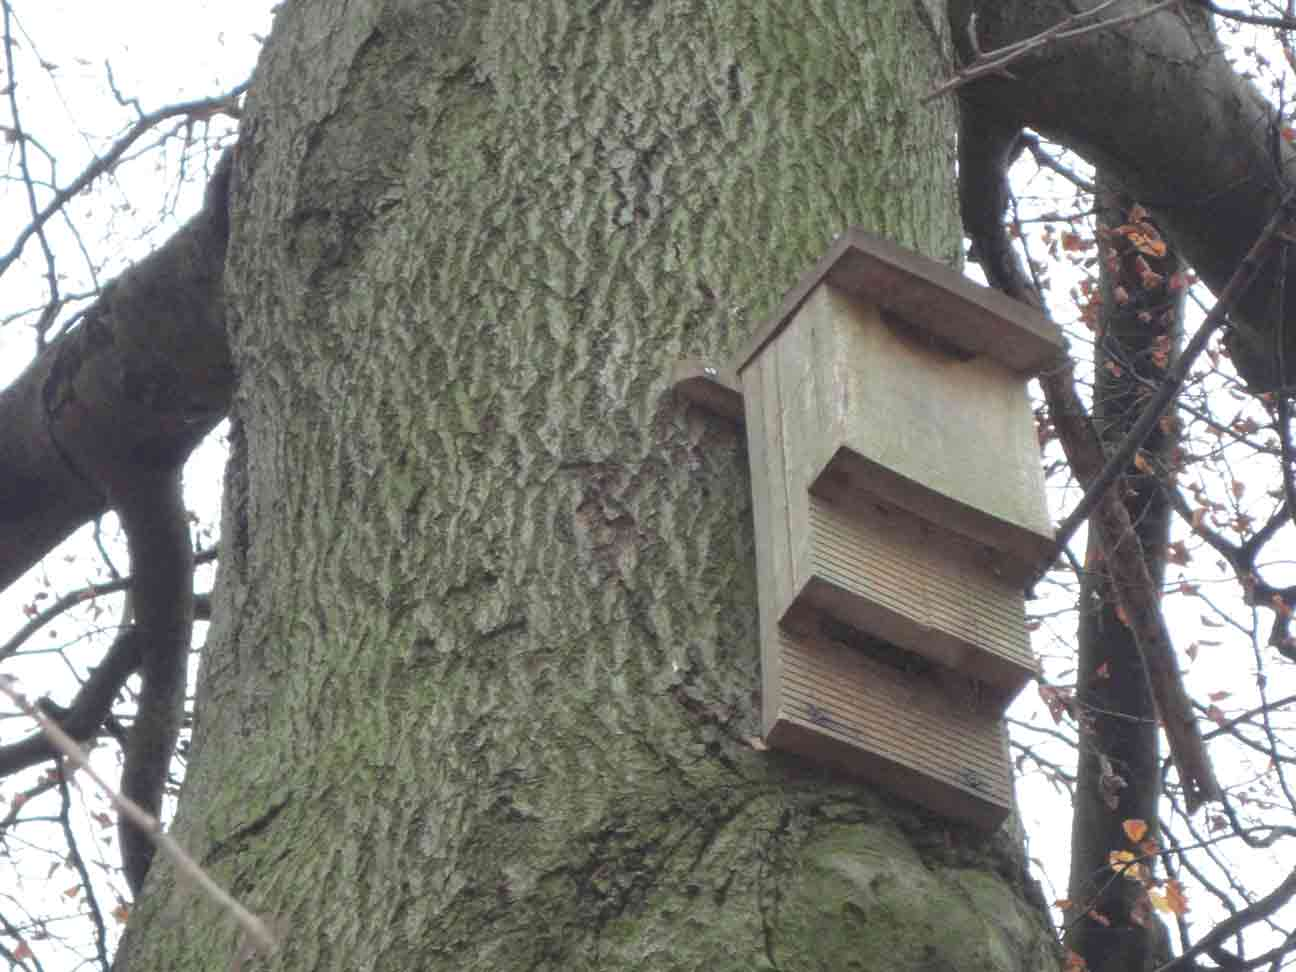 Bat Box close-up